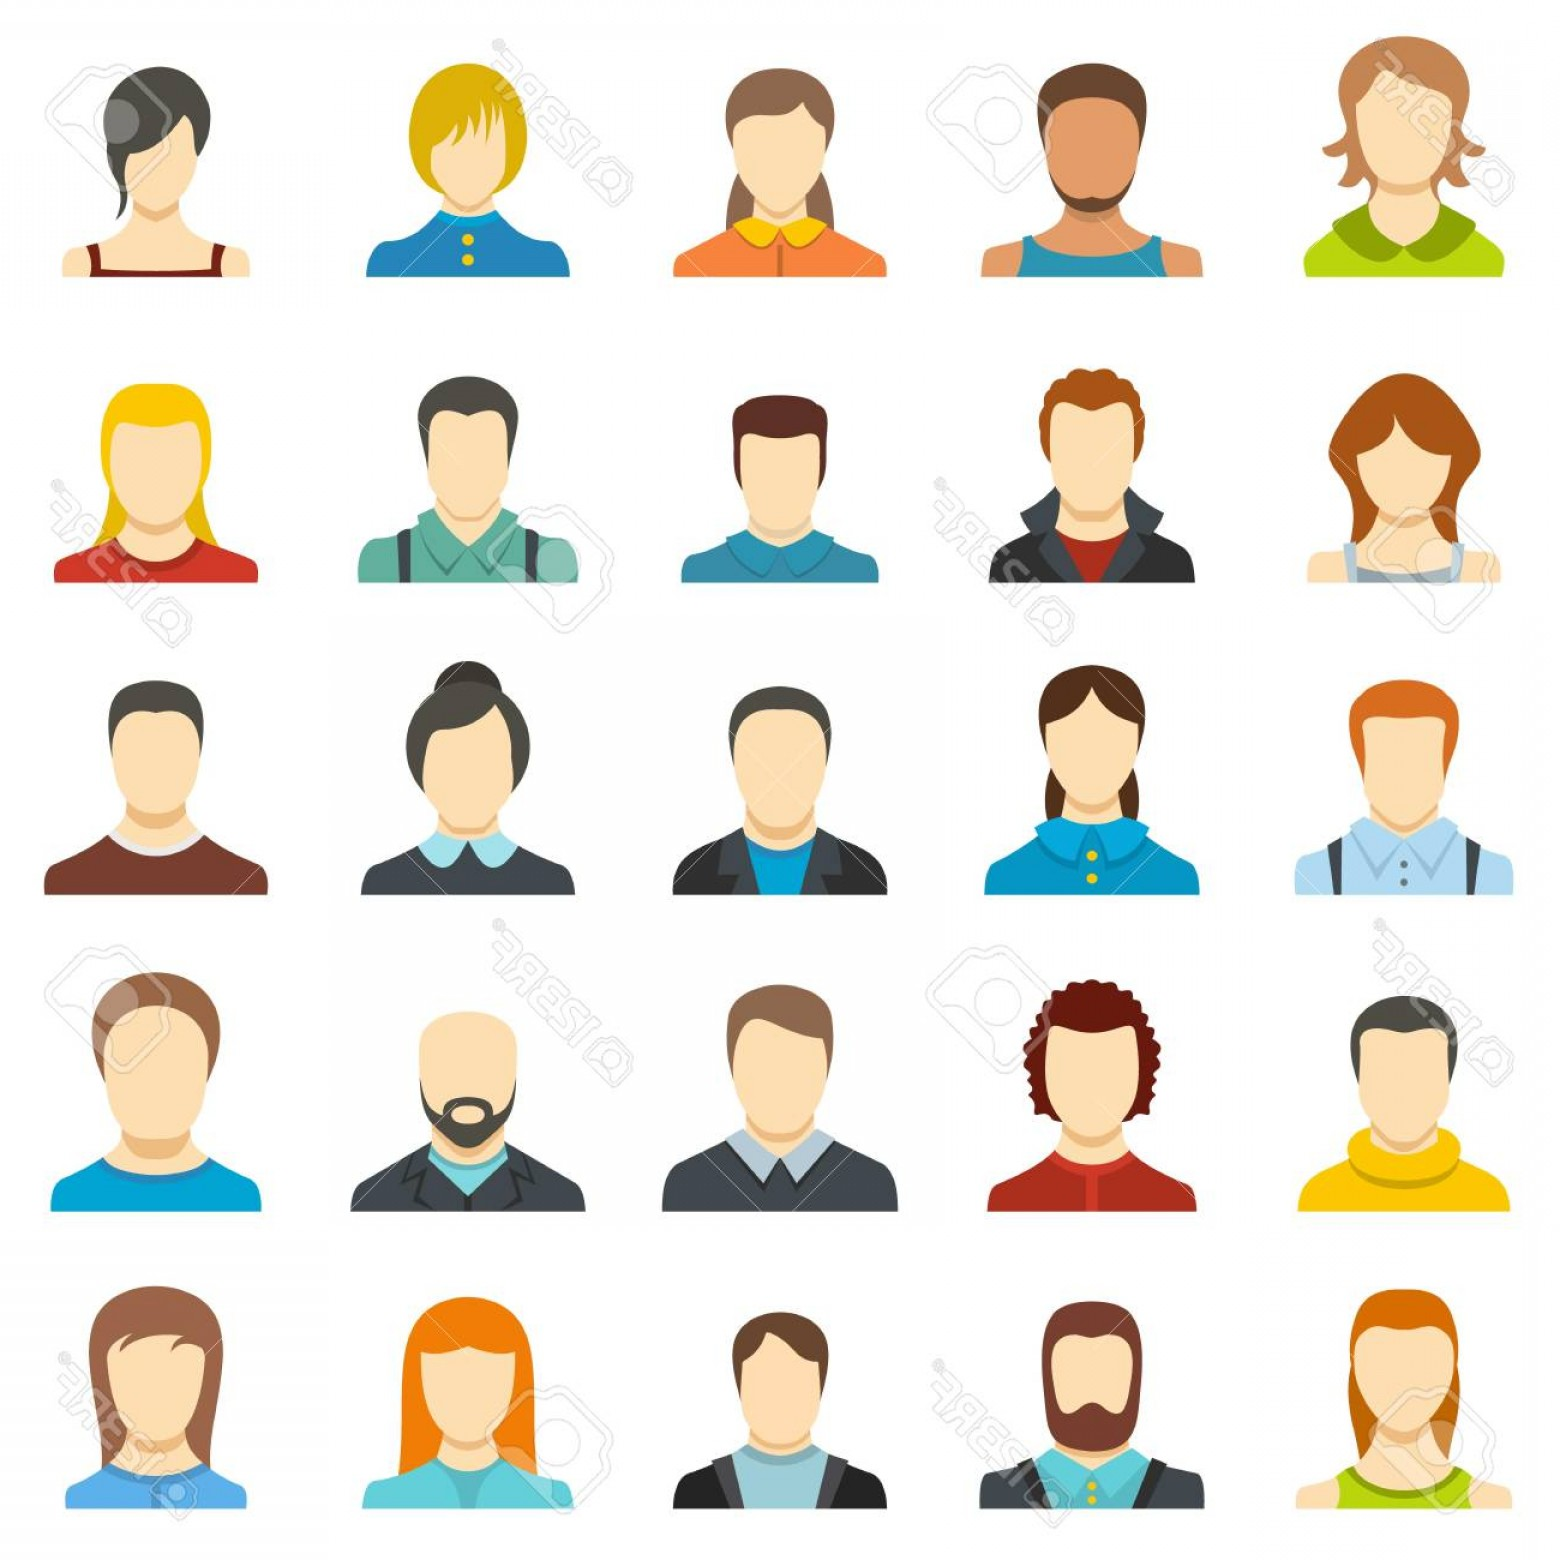 User Icon Vector Free: Photostock Vector Avatar User Icon Set Isolated Flat Illustration Of Avatar User Vector Icons For Web